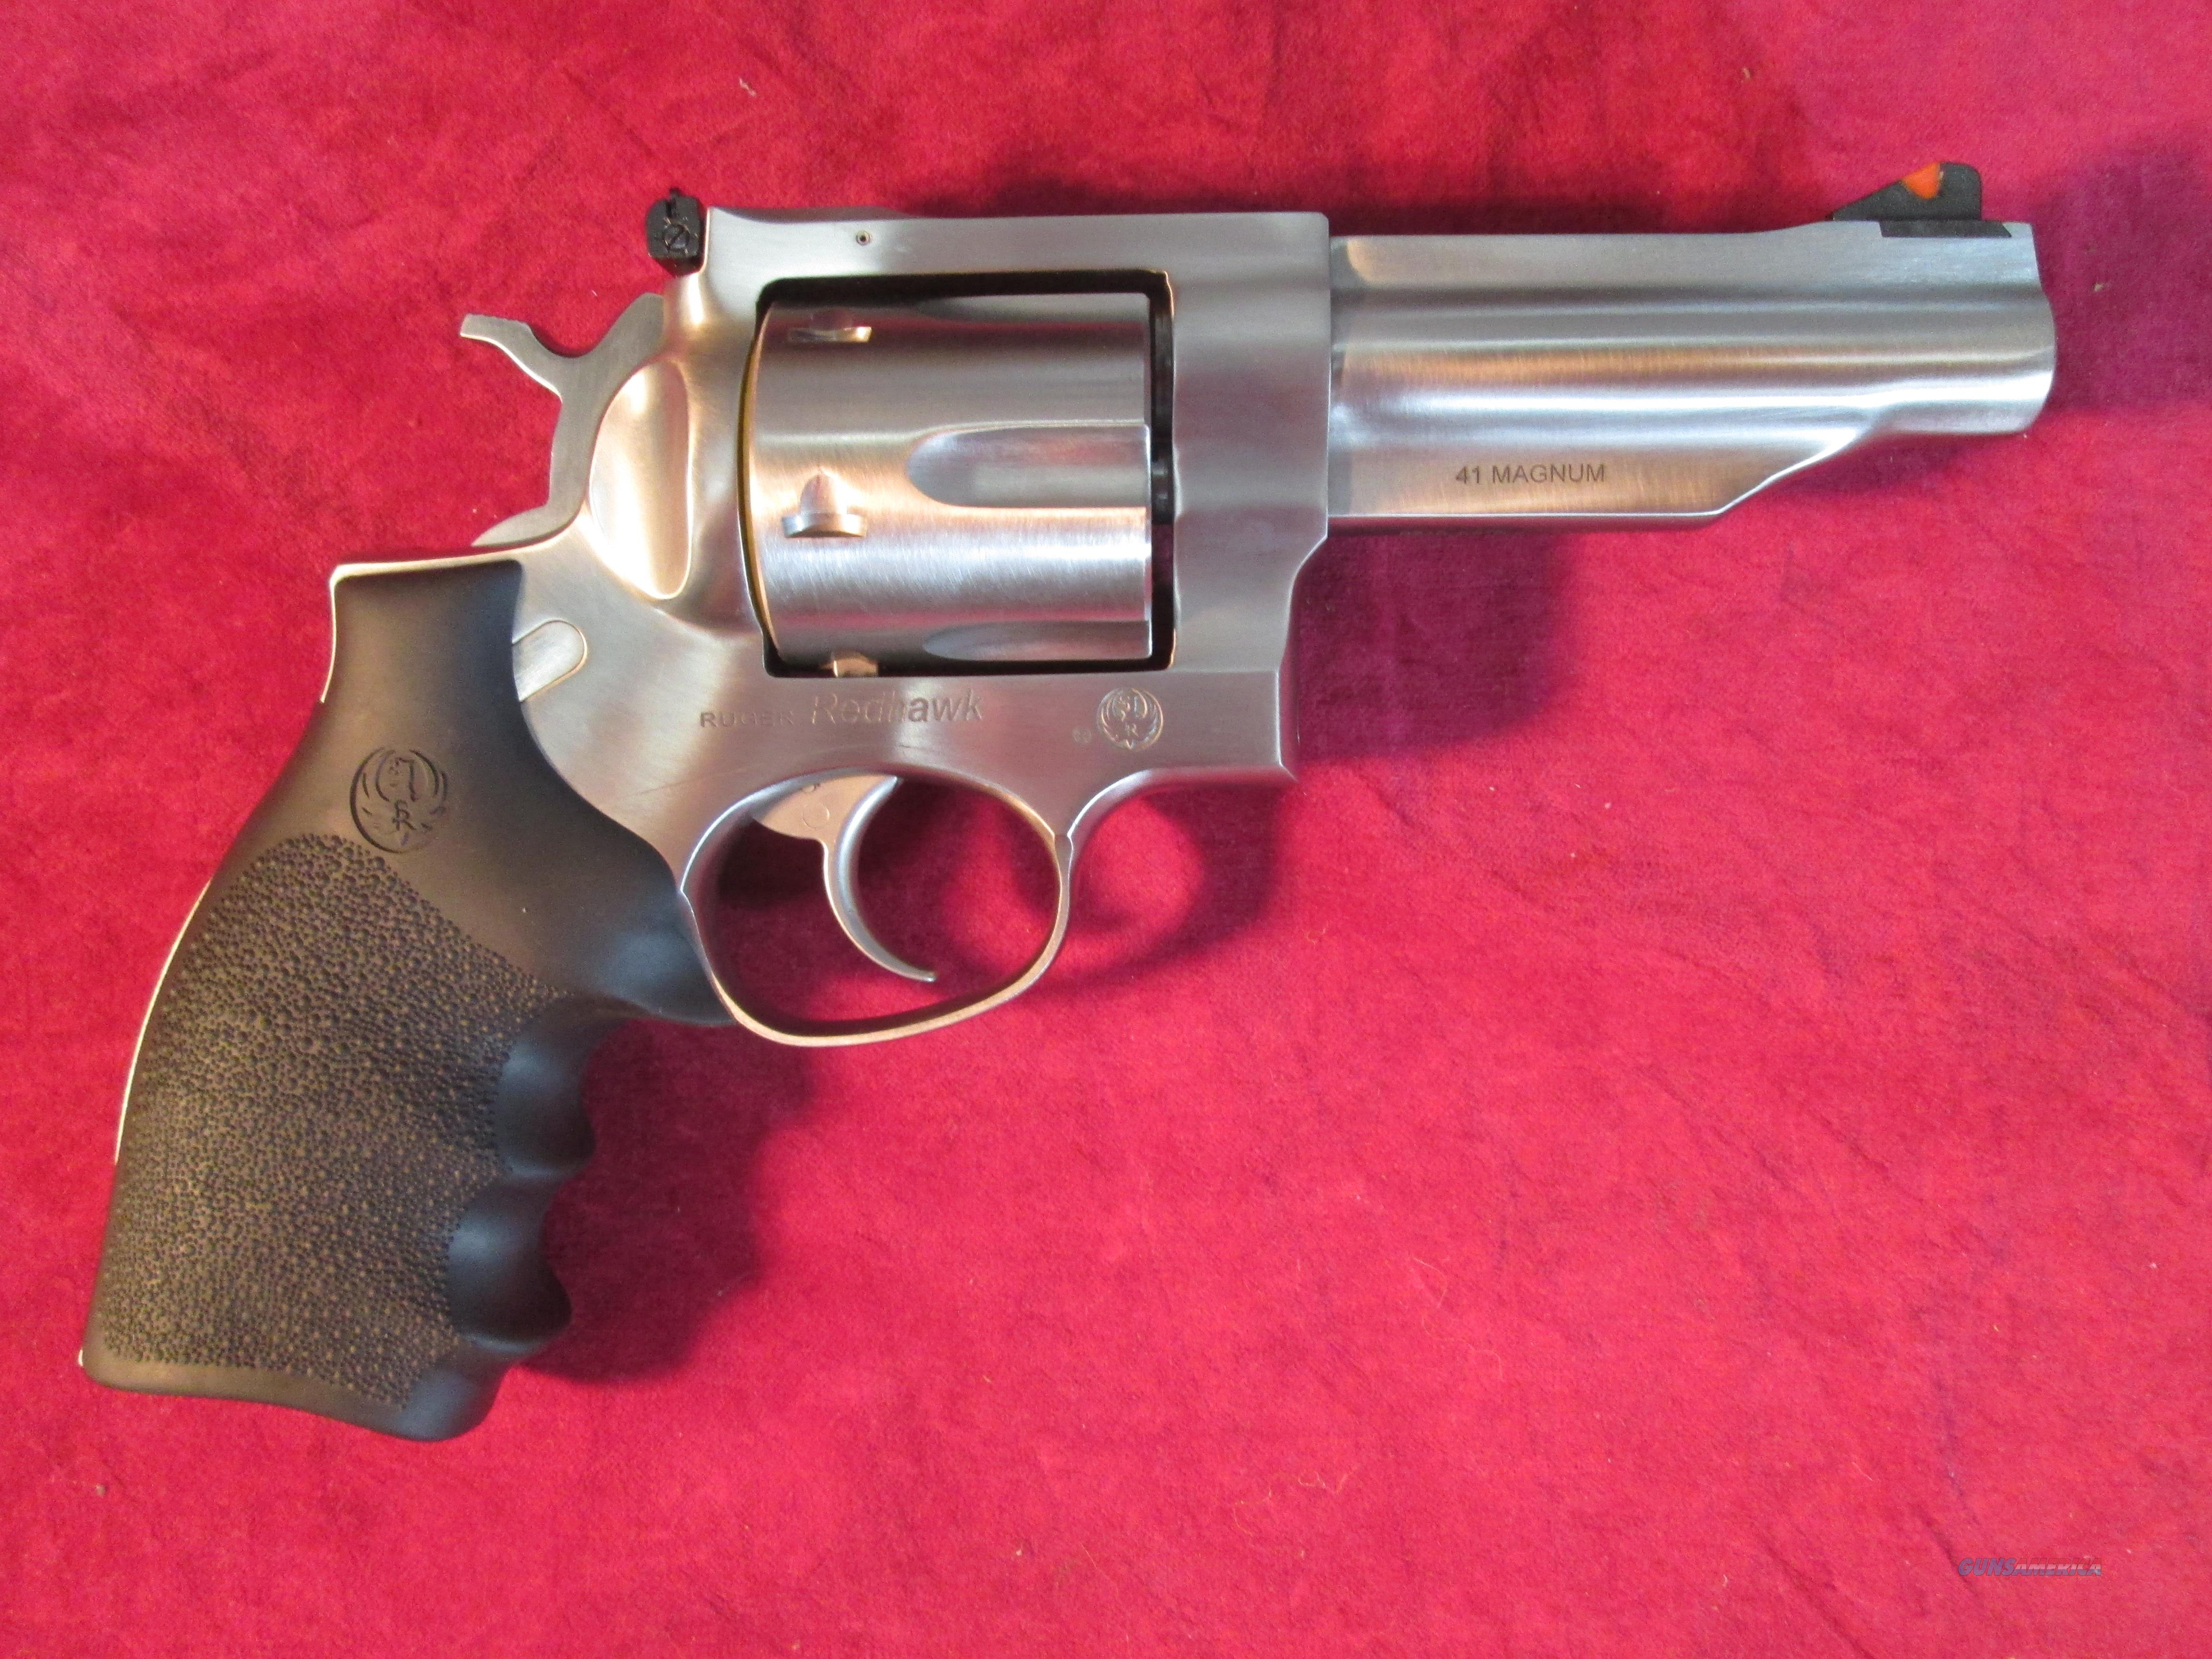 "RUGER REDHAWK 41MAGNUM 4.2"" STAINLESS NEW (05031)   Guns > Pistols > Ruger Double Action Revolver > Redhawk Type"